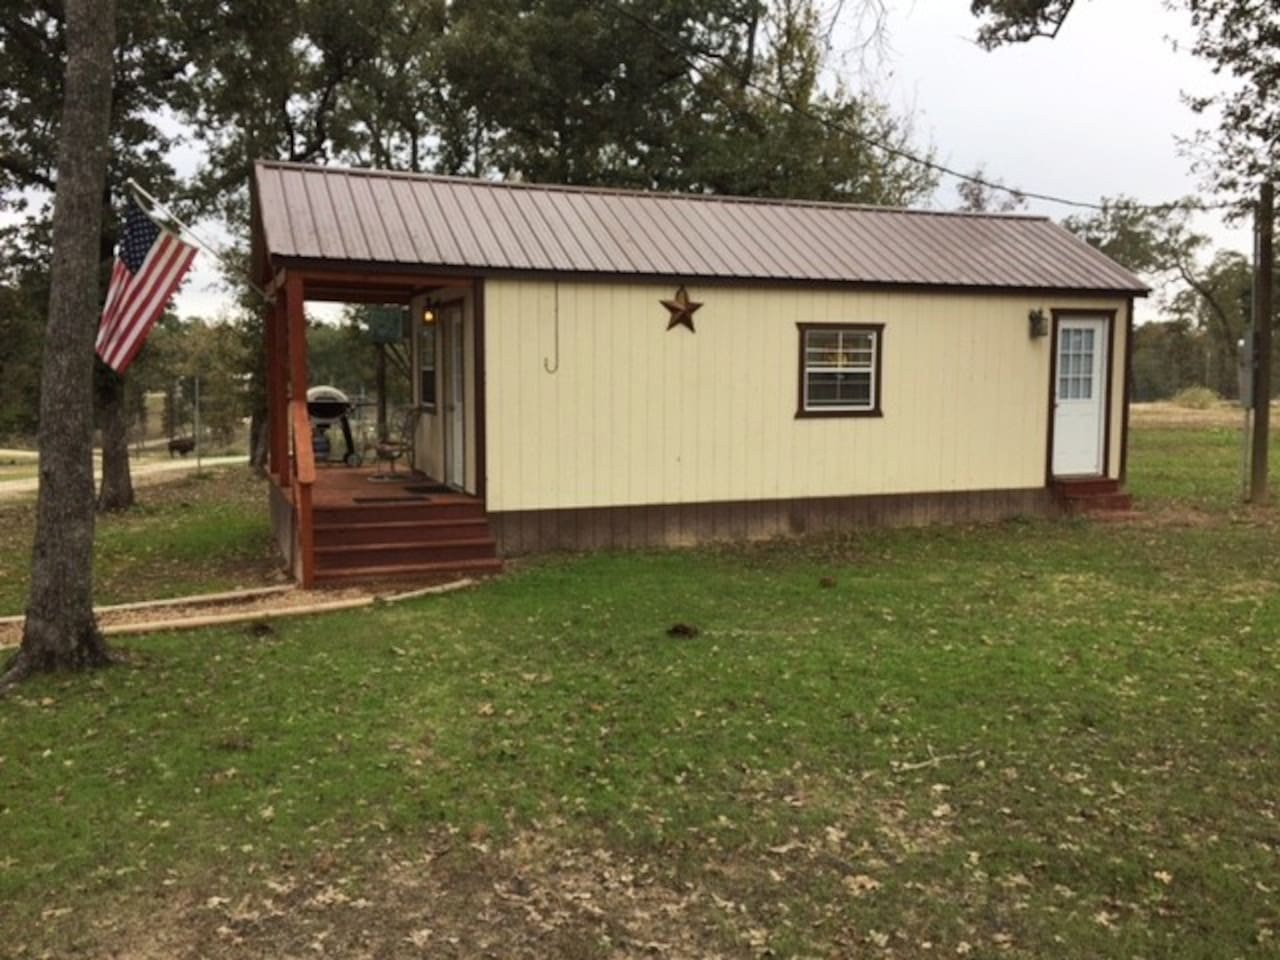 Cozy Cabin with 1 Bedroom/1 Bath, Kitchen and Living Area